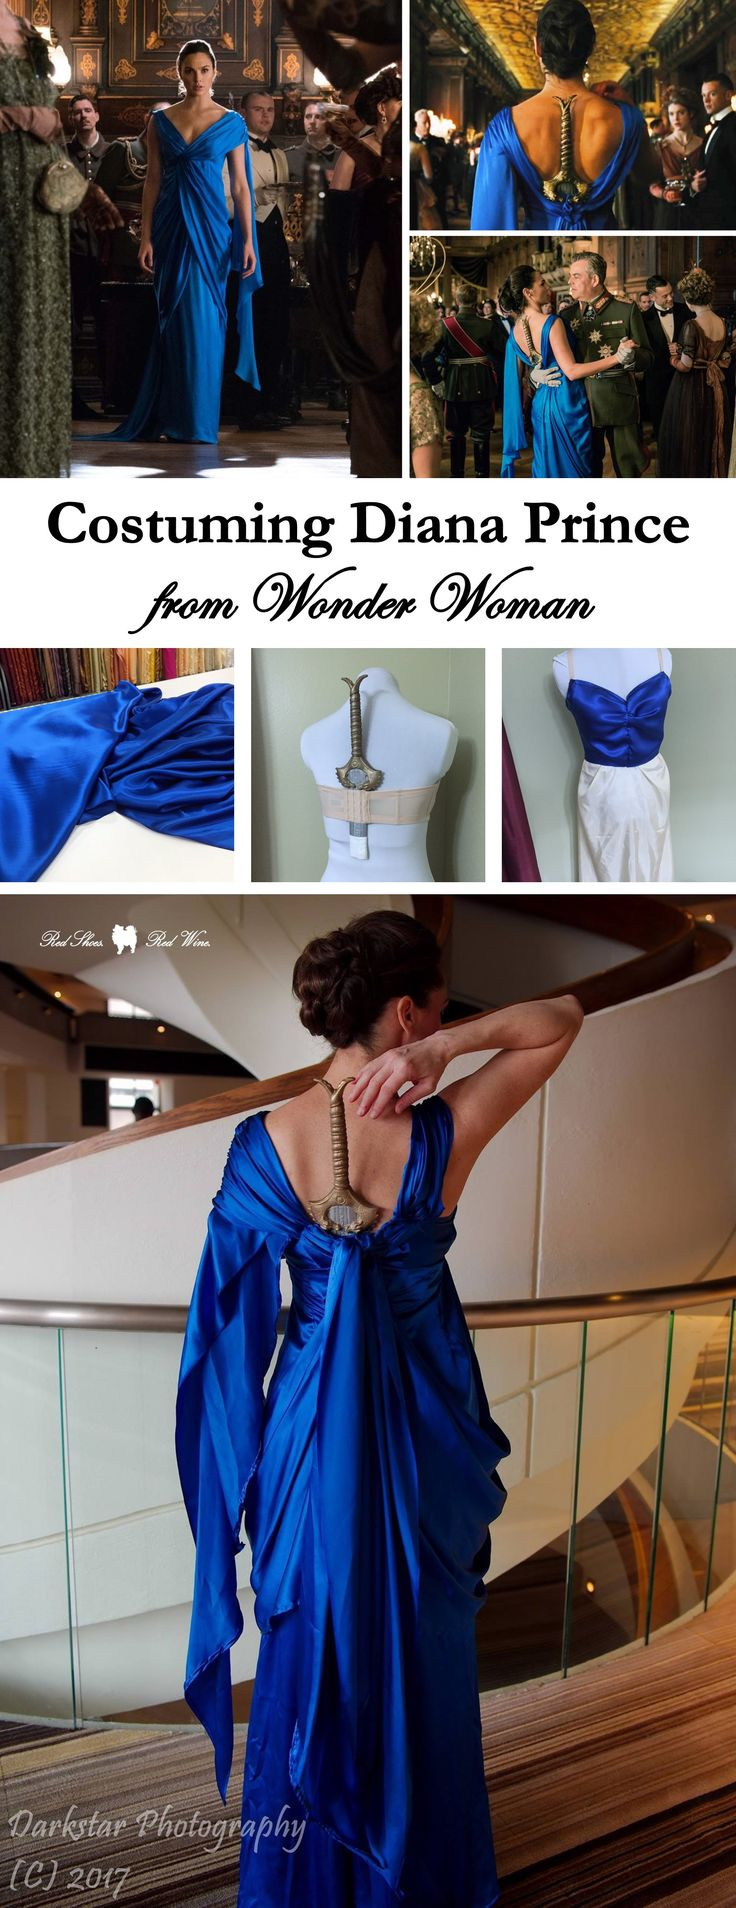 Costuming Diana Prince from Wonder Woman (how-to, film, movie, amazonian, themyscira, diana prince, warrior women, amazons, costume, cosplay, dragoncon, sewing, blue dress, sword dress, gala, silk, boots, amazon, ootd)